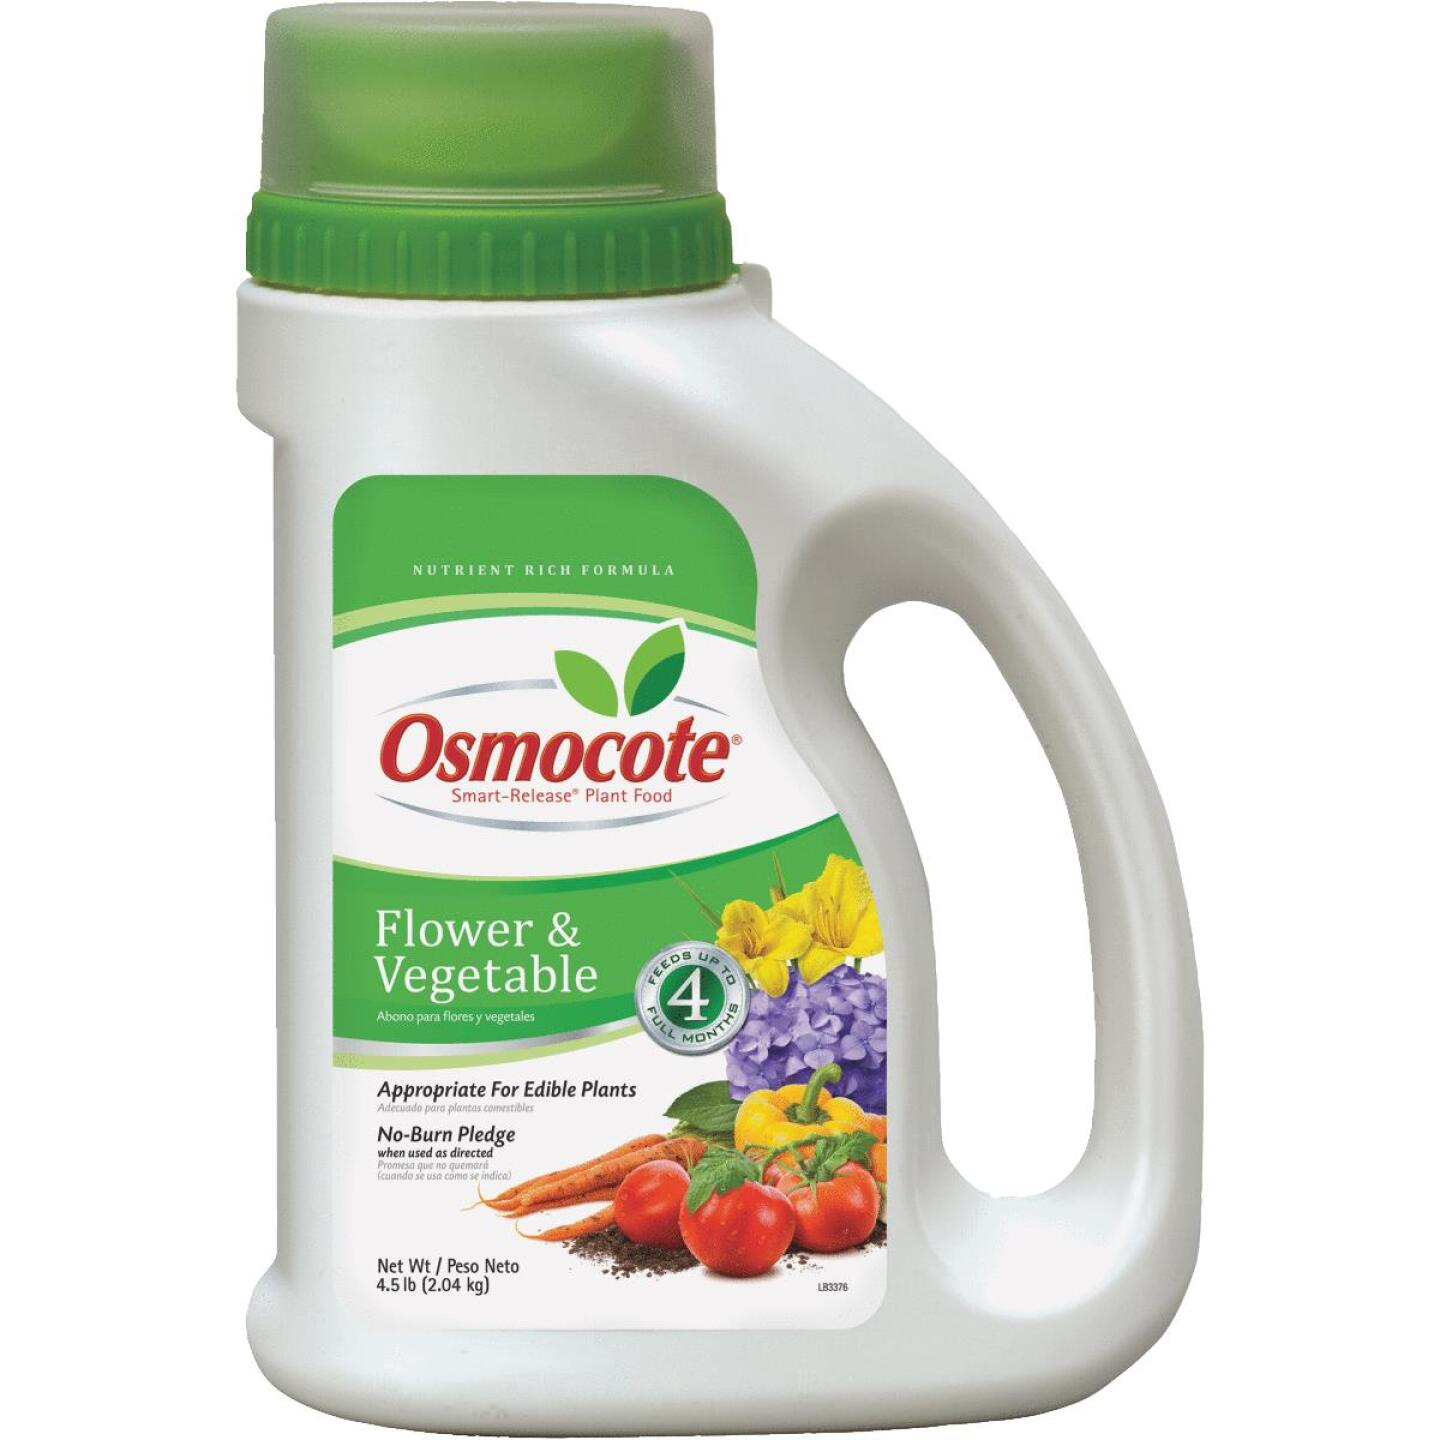 Osmocote 4.5 Lb. 14-14-14 Flower & Vegetable Smart Release Dry Plant Food Image 1